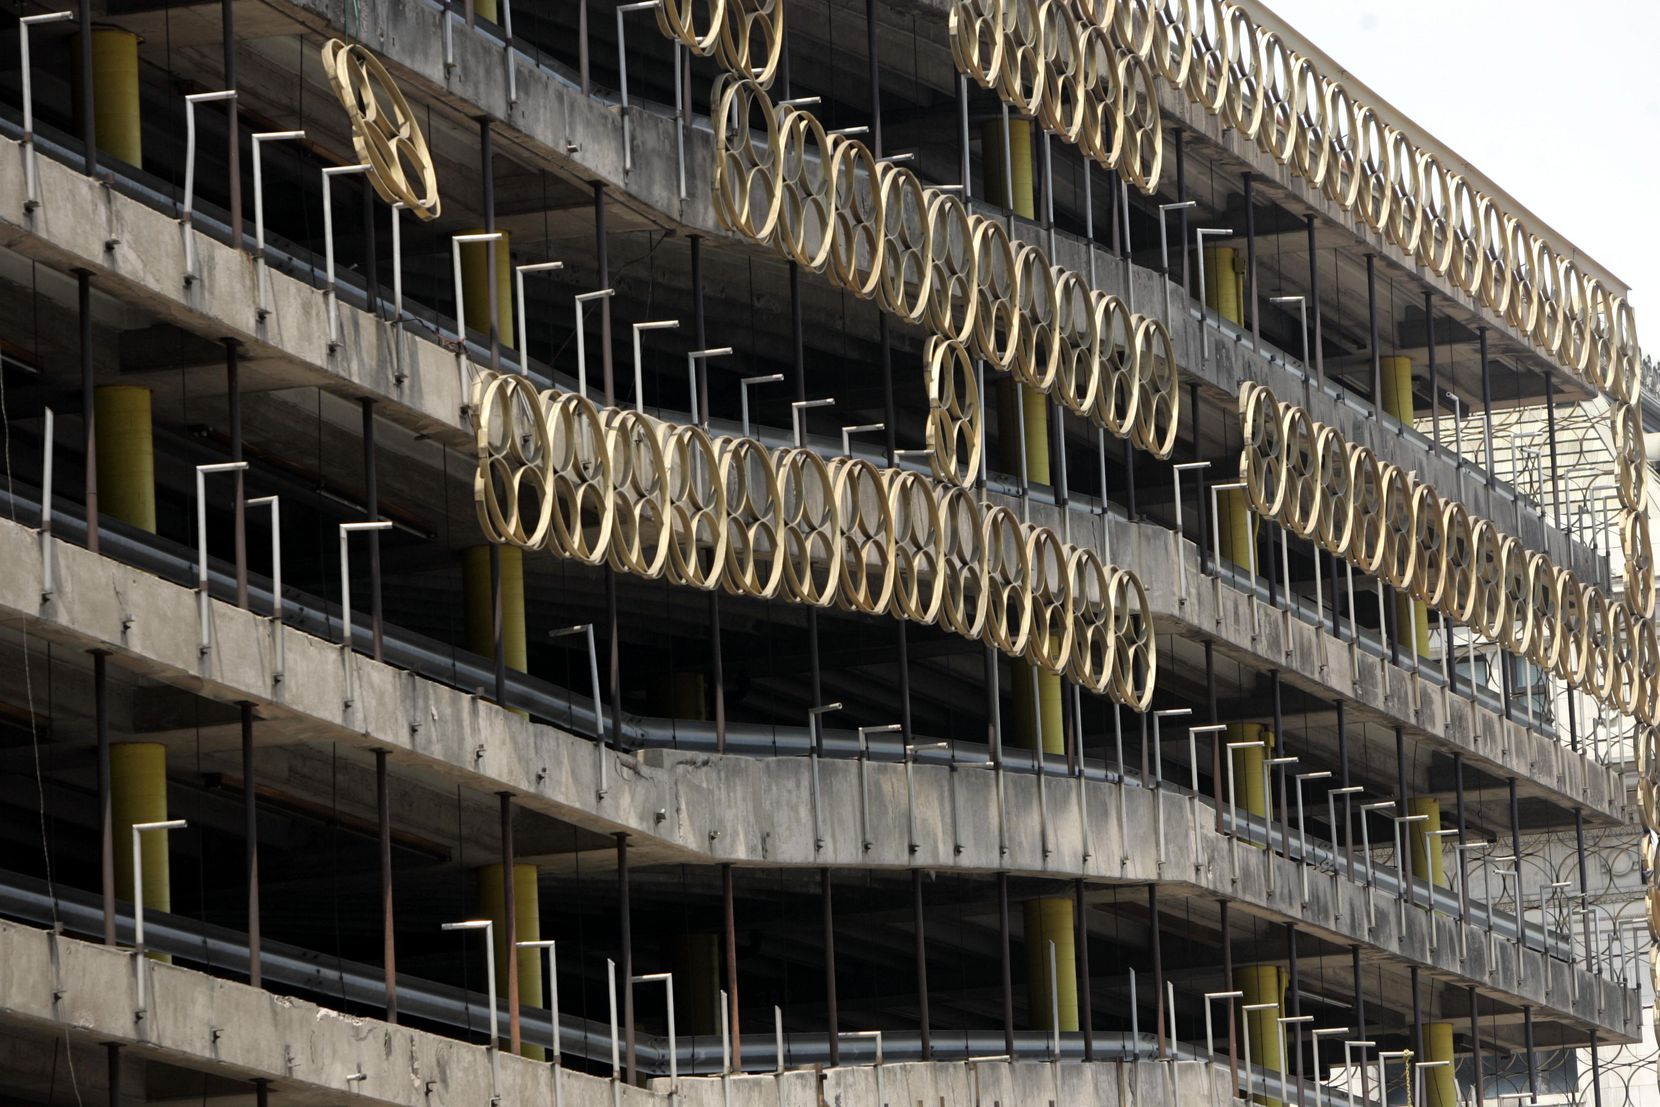 This 2005 photo shows the large rings that decorated a downtown parking garage that was later razed to build Main Street Garden. Some of those rings will be used in a latticework structure in Harwood Park.